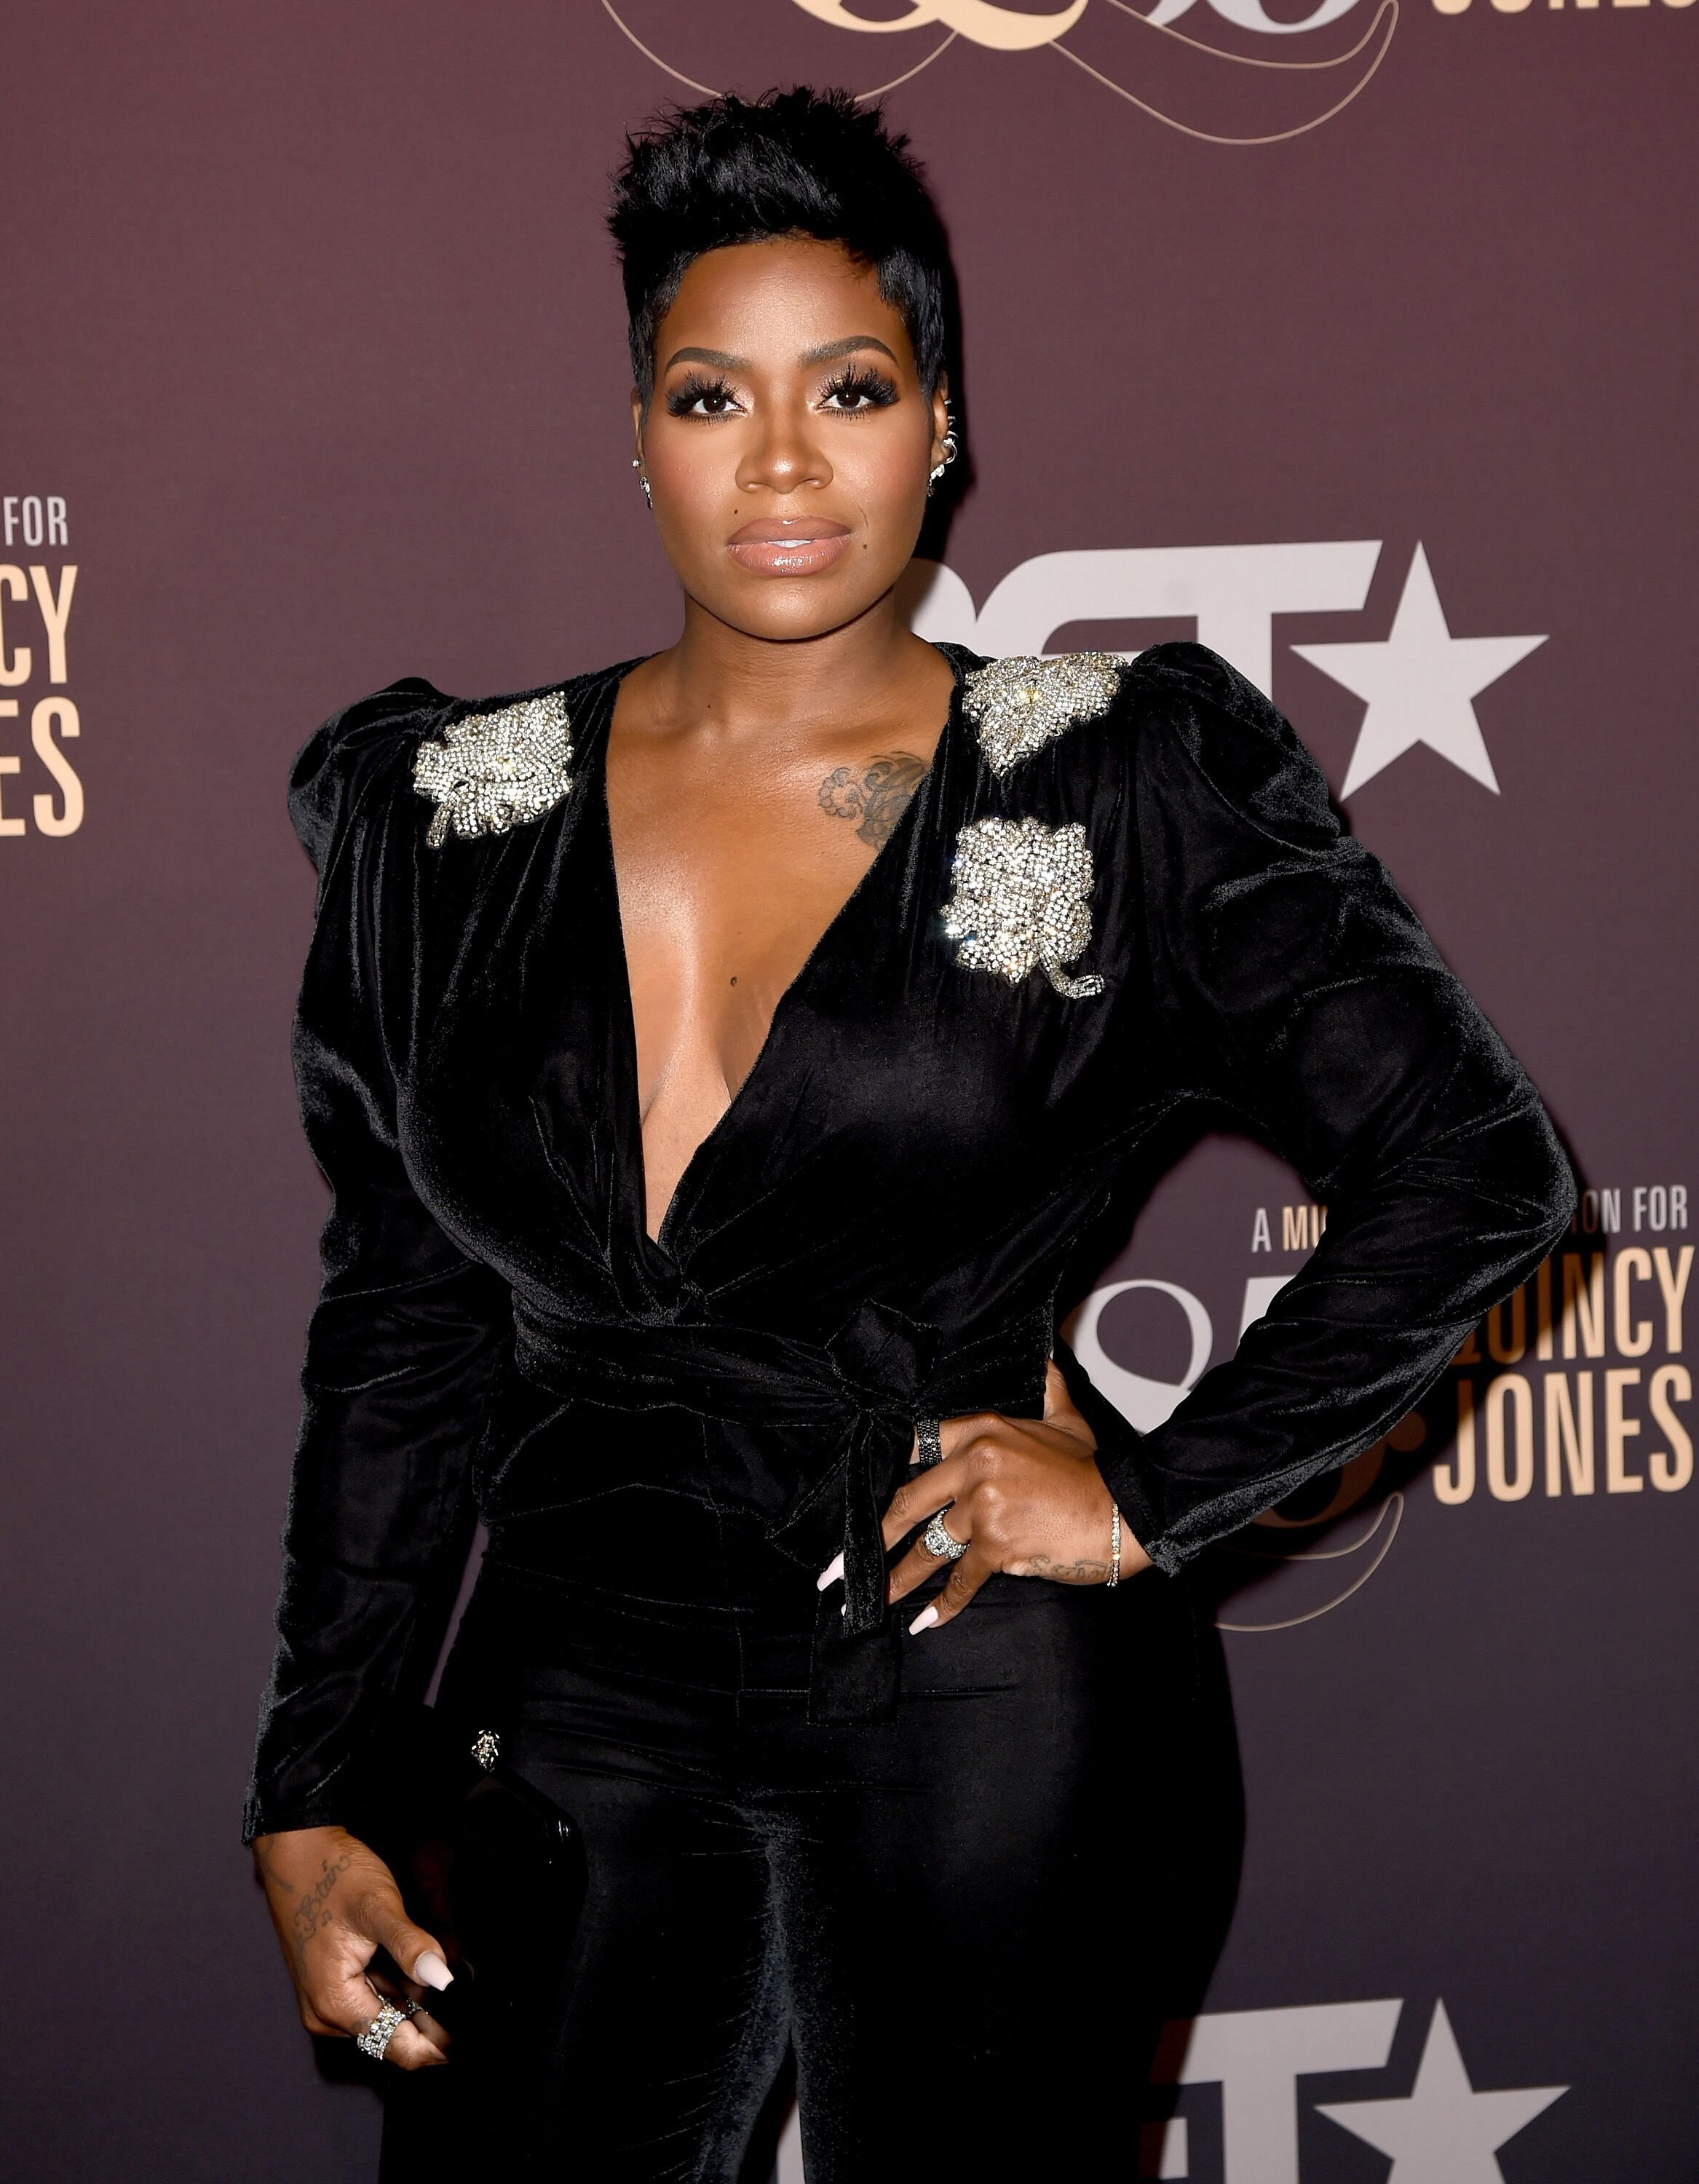 Fantasia Barrino attends a BET event | Source: Getty Images/GlobalImagesUkraine